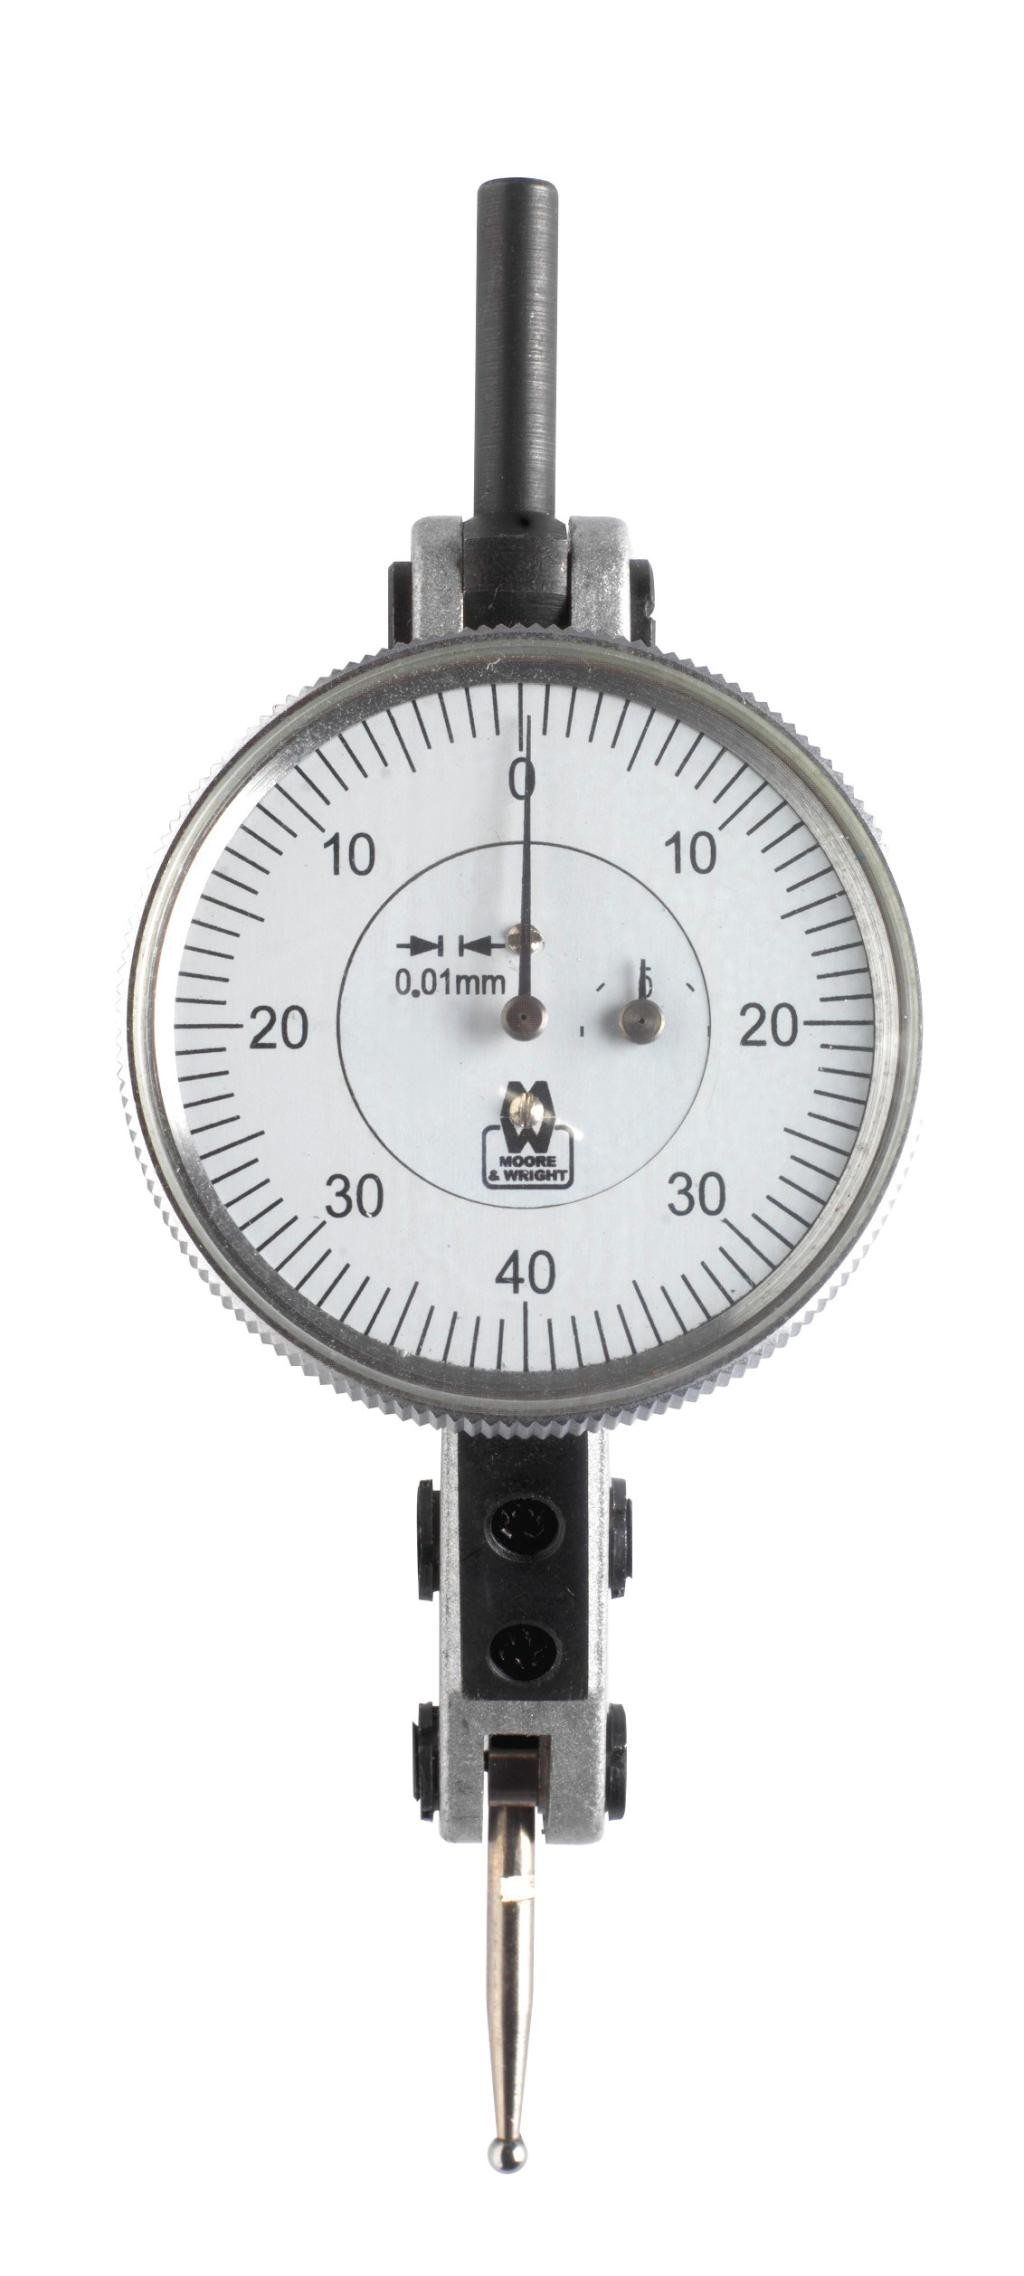 MOORE AND WRIGHT DIAL TEST INDICATOR 422 SERIES.